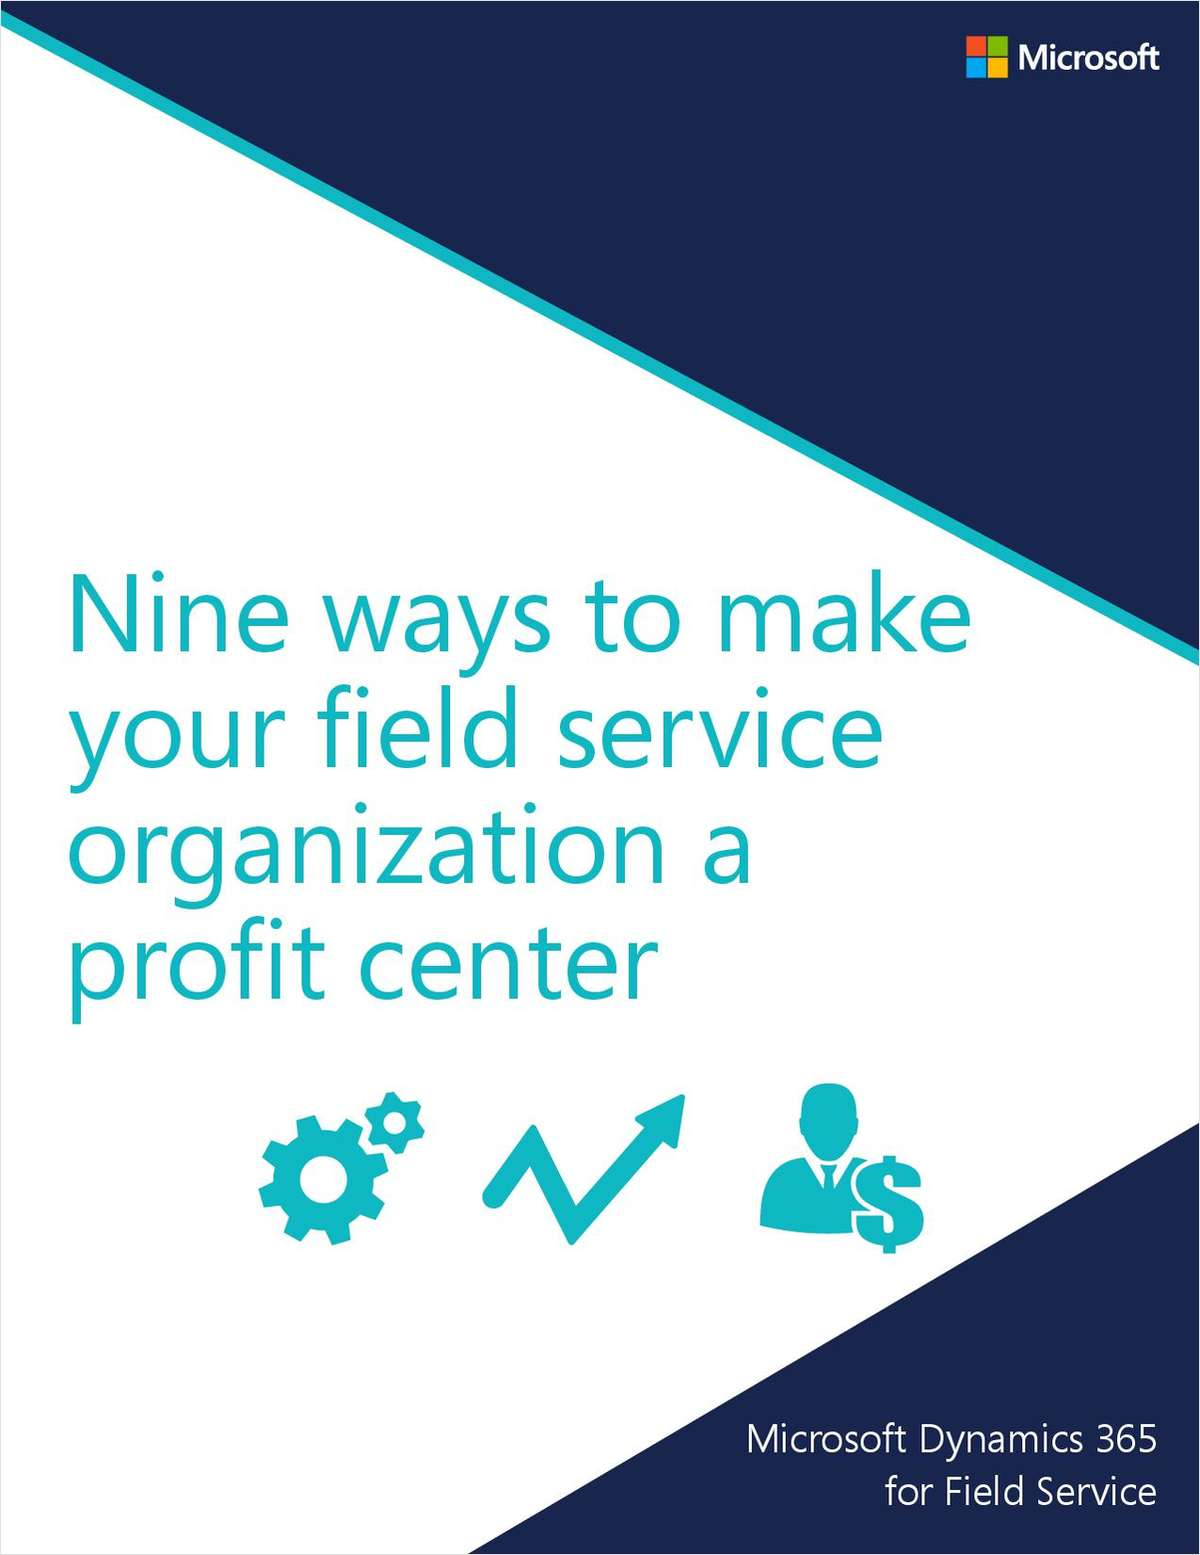 9 Ways to Make Your Field Service Organization a Profit Center